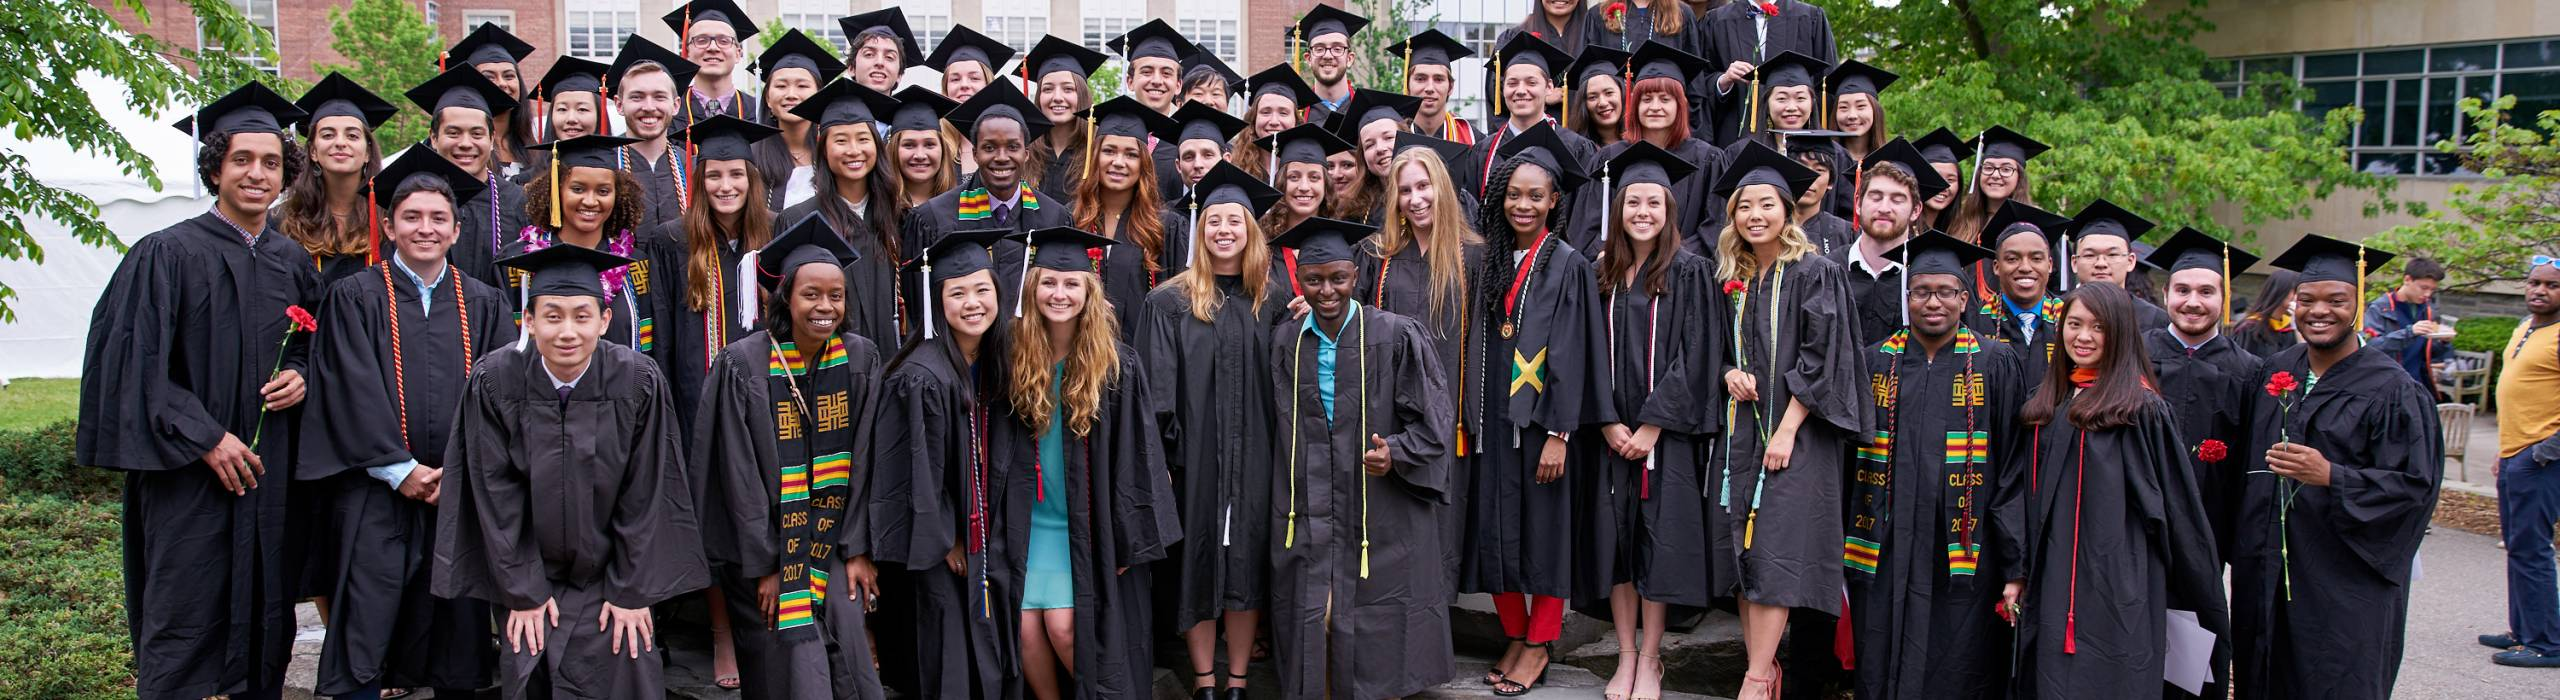 The Cornell Info Sci class of 2017 during Commencement on Saturday, May 27.